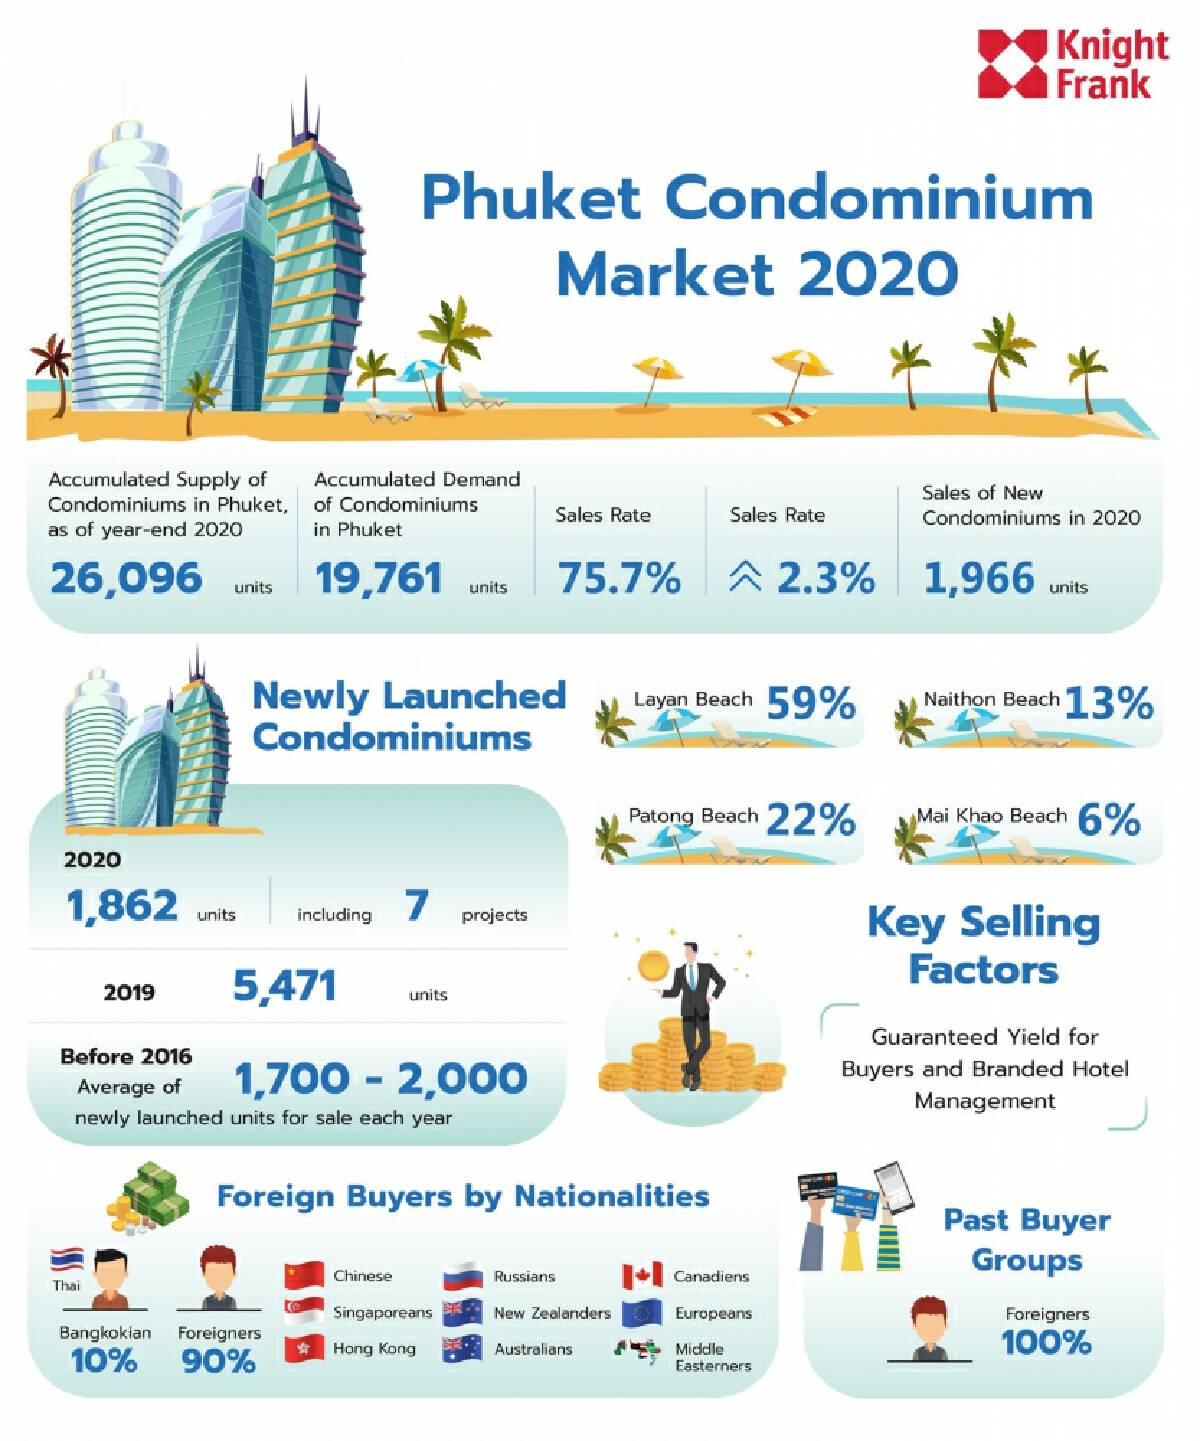 Potential remains high for Phuket's real estate market despite Covid-19 impact